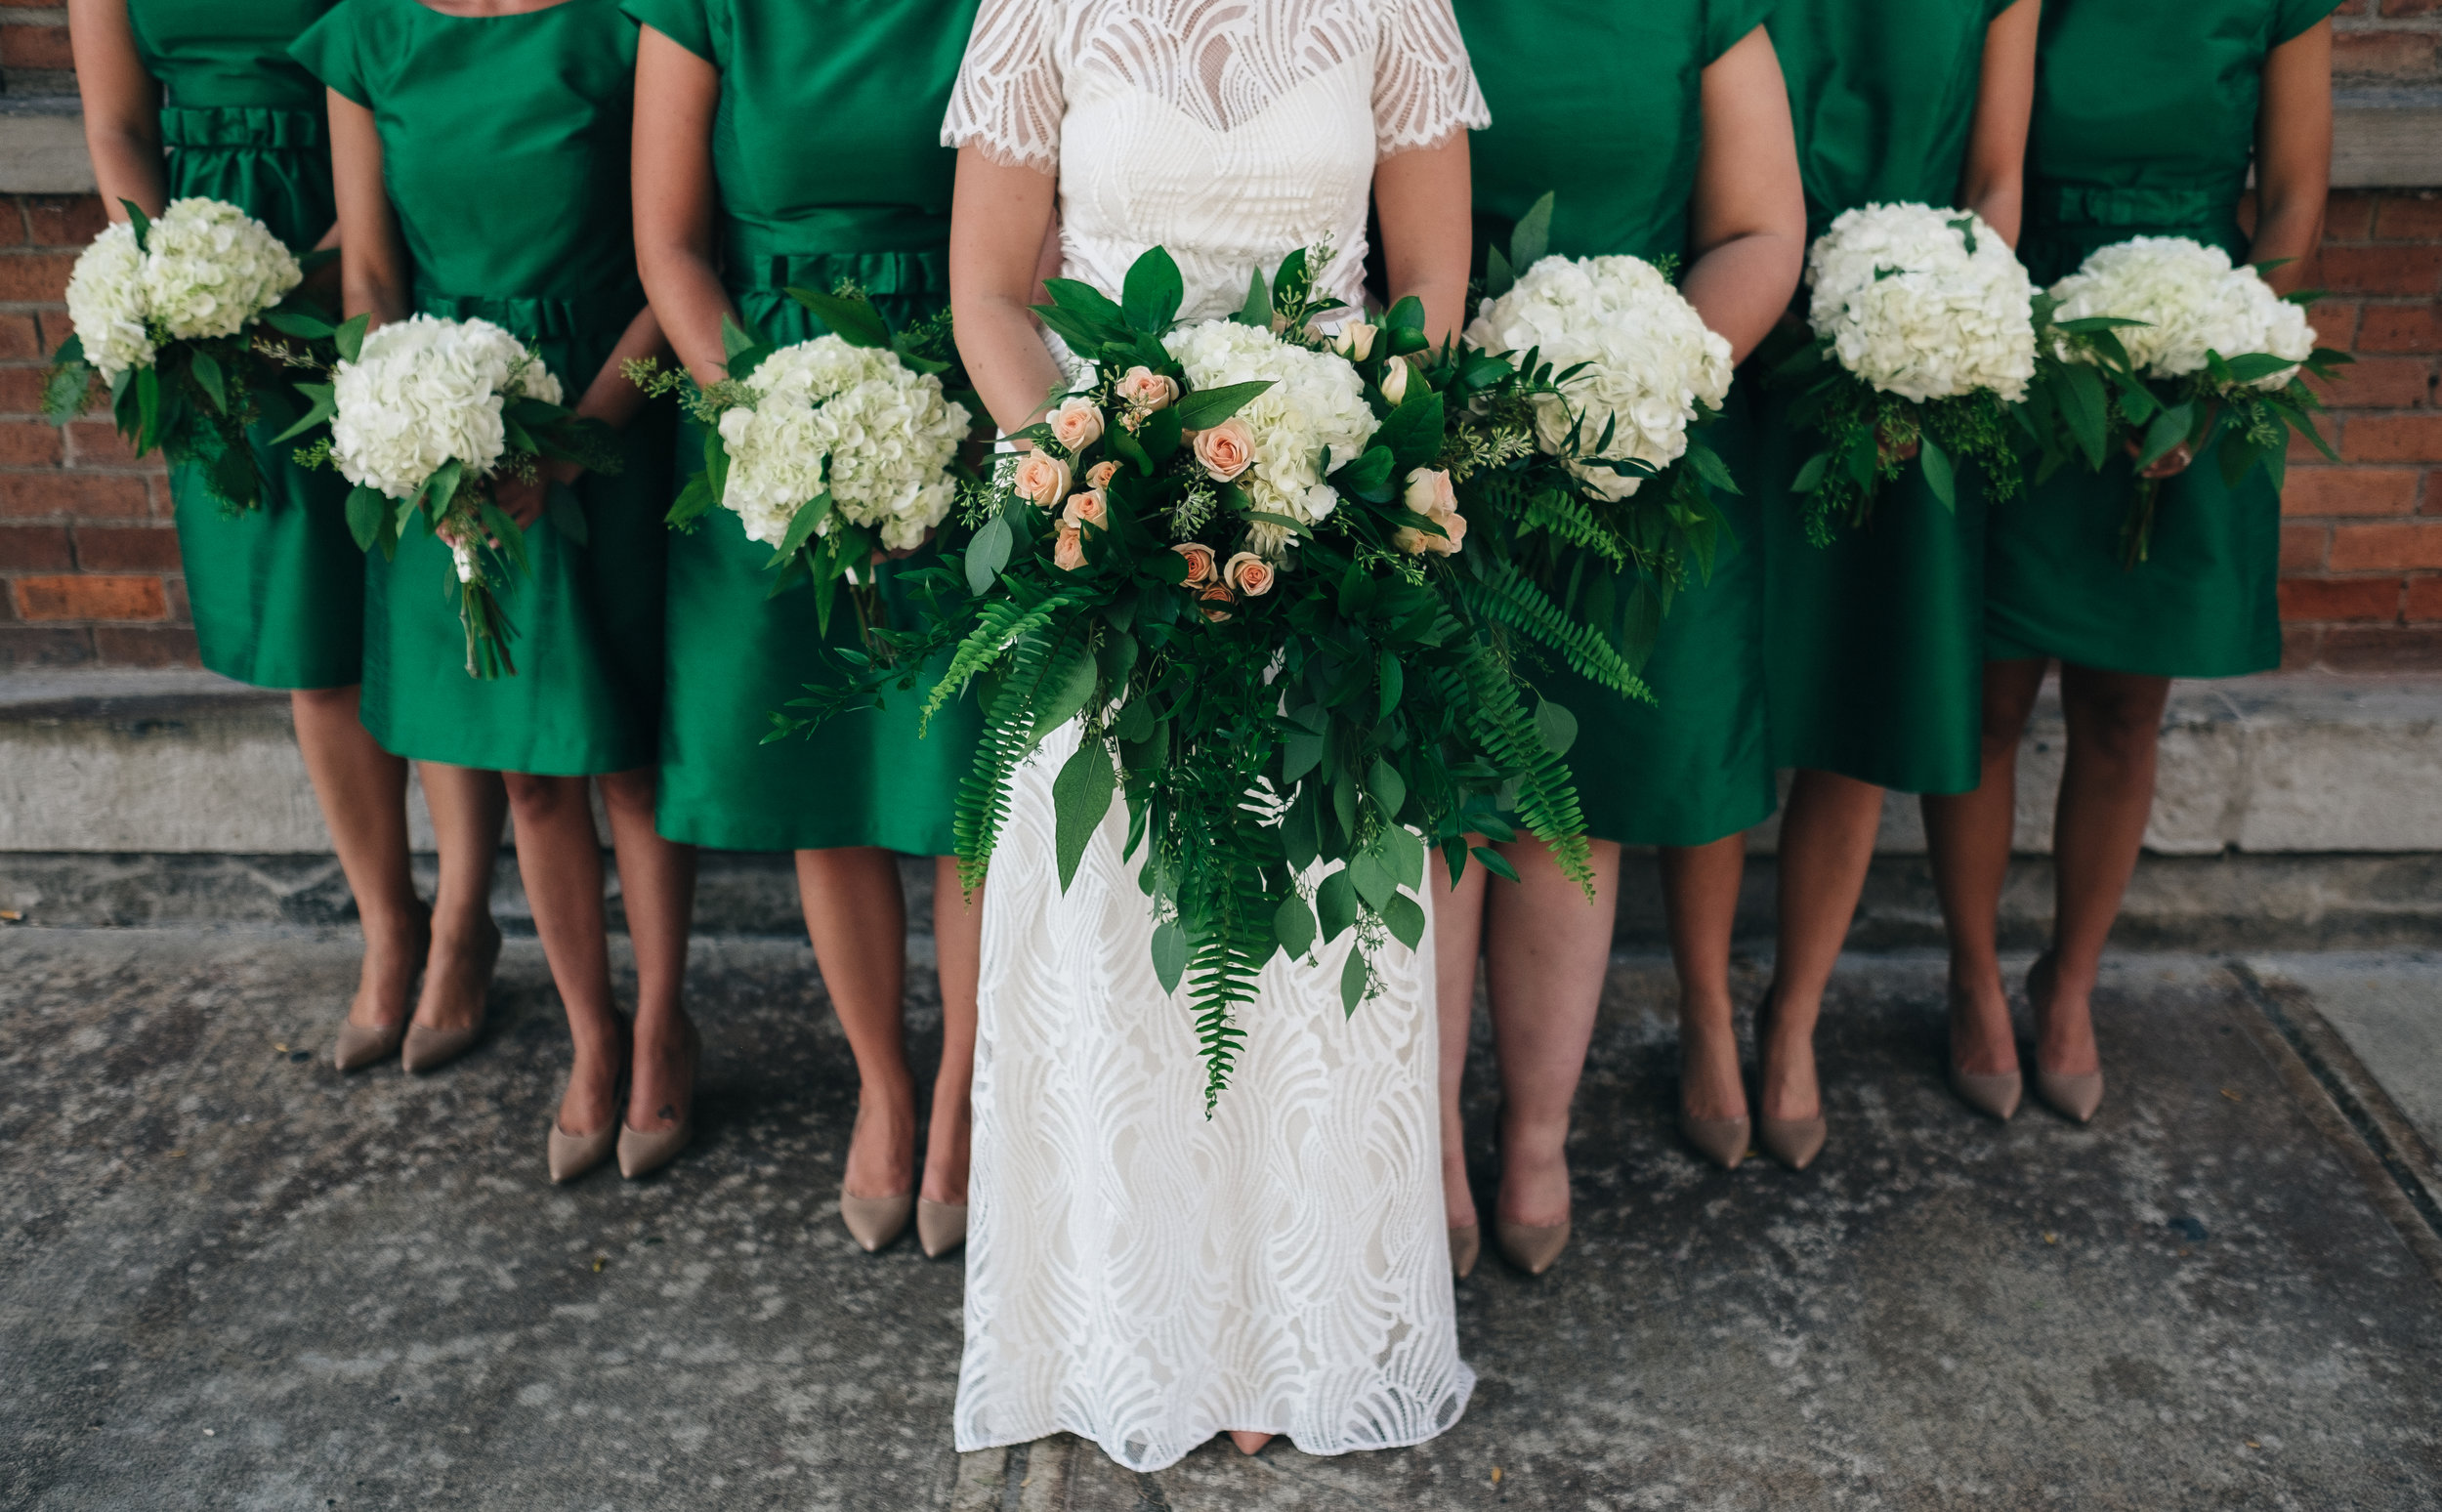 Wedding using the 2017 Pantone Color of the Year, 'Greenery'.